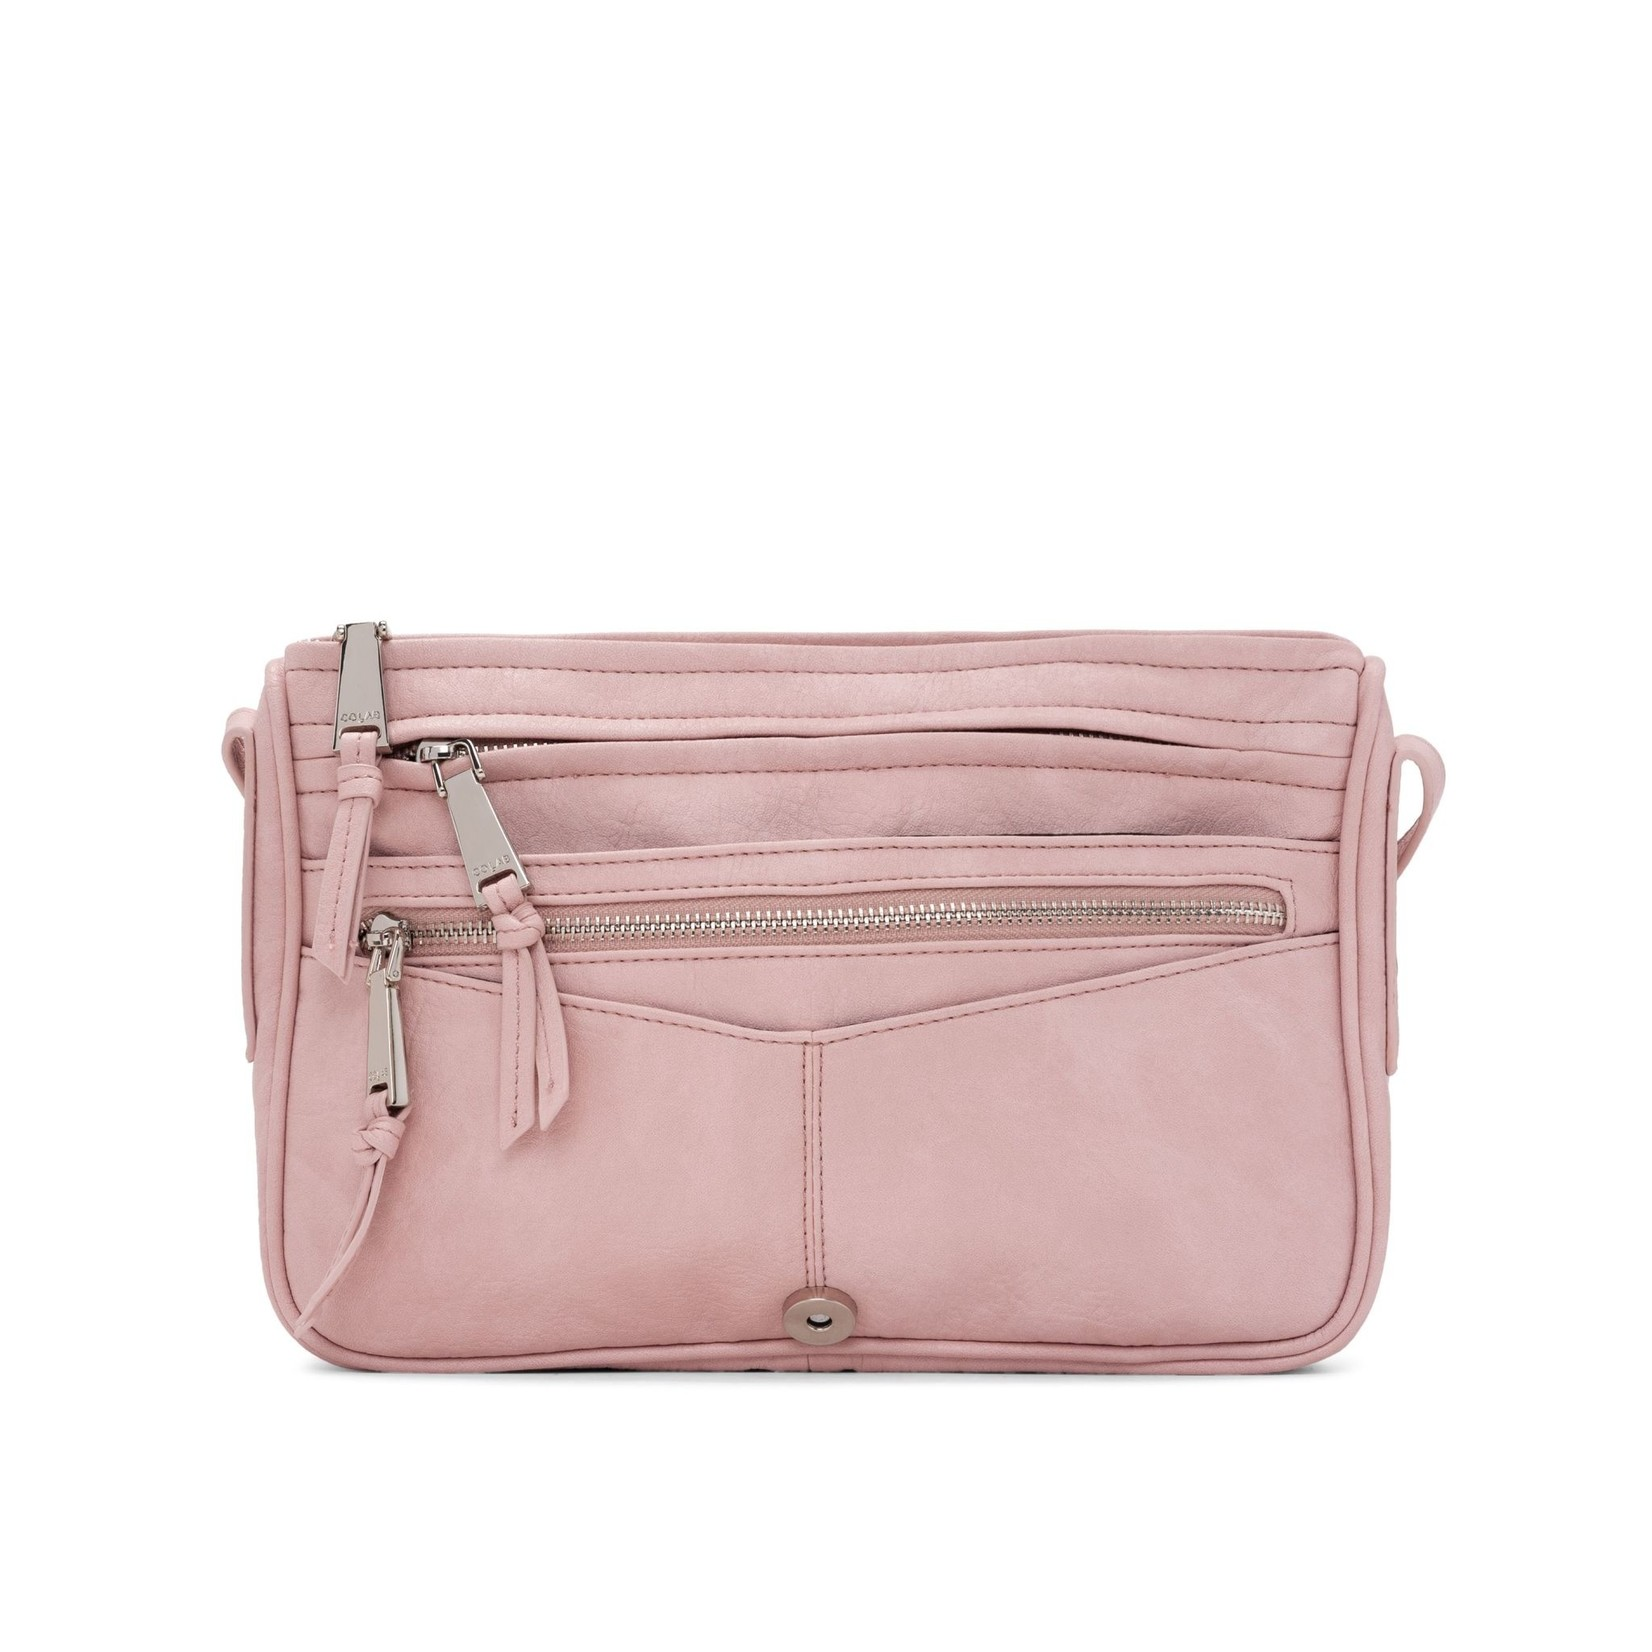 Co-lab Co-lab sac loft 2.0 rose